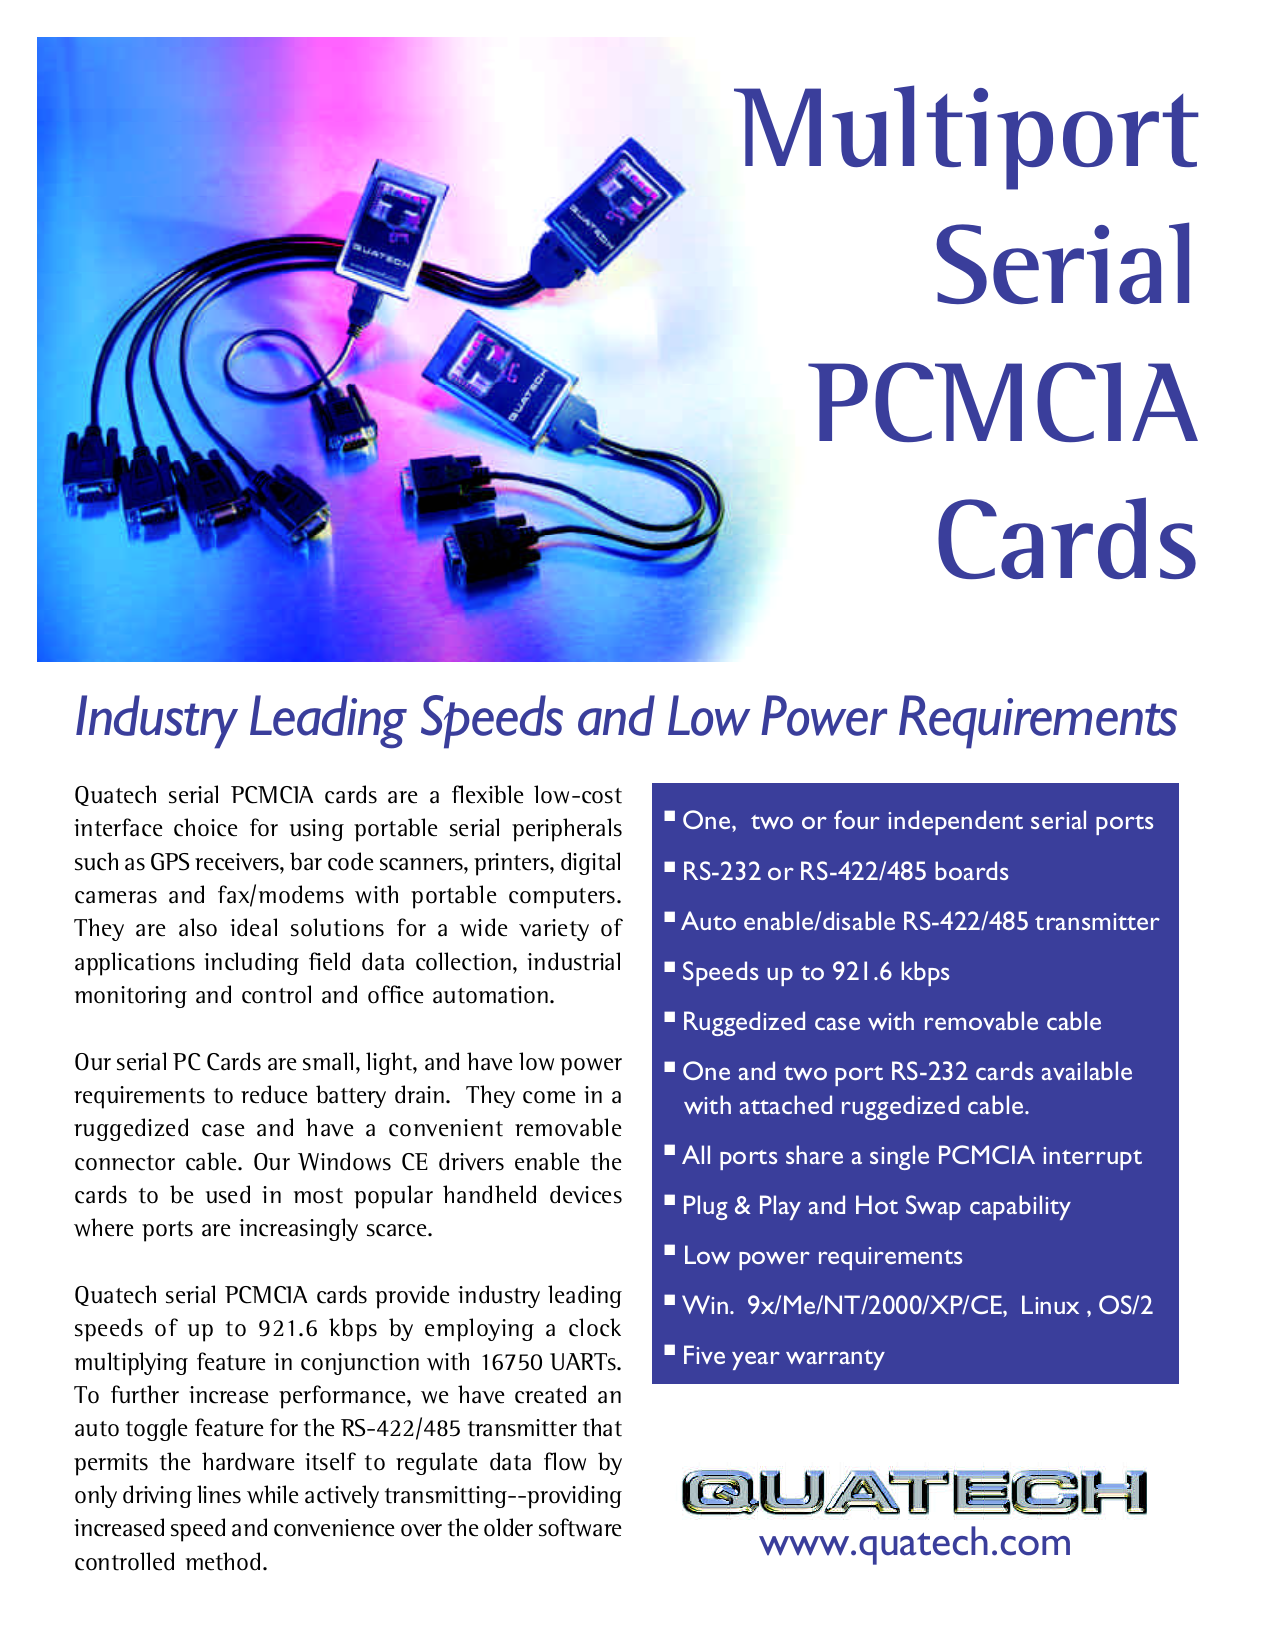 pdf for Quatech Other SSP-100 PCMCIA Cards manual